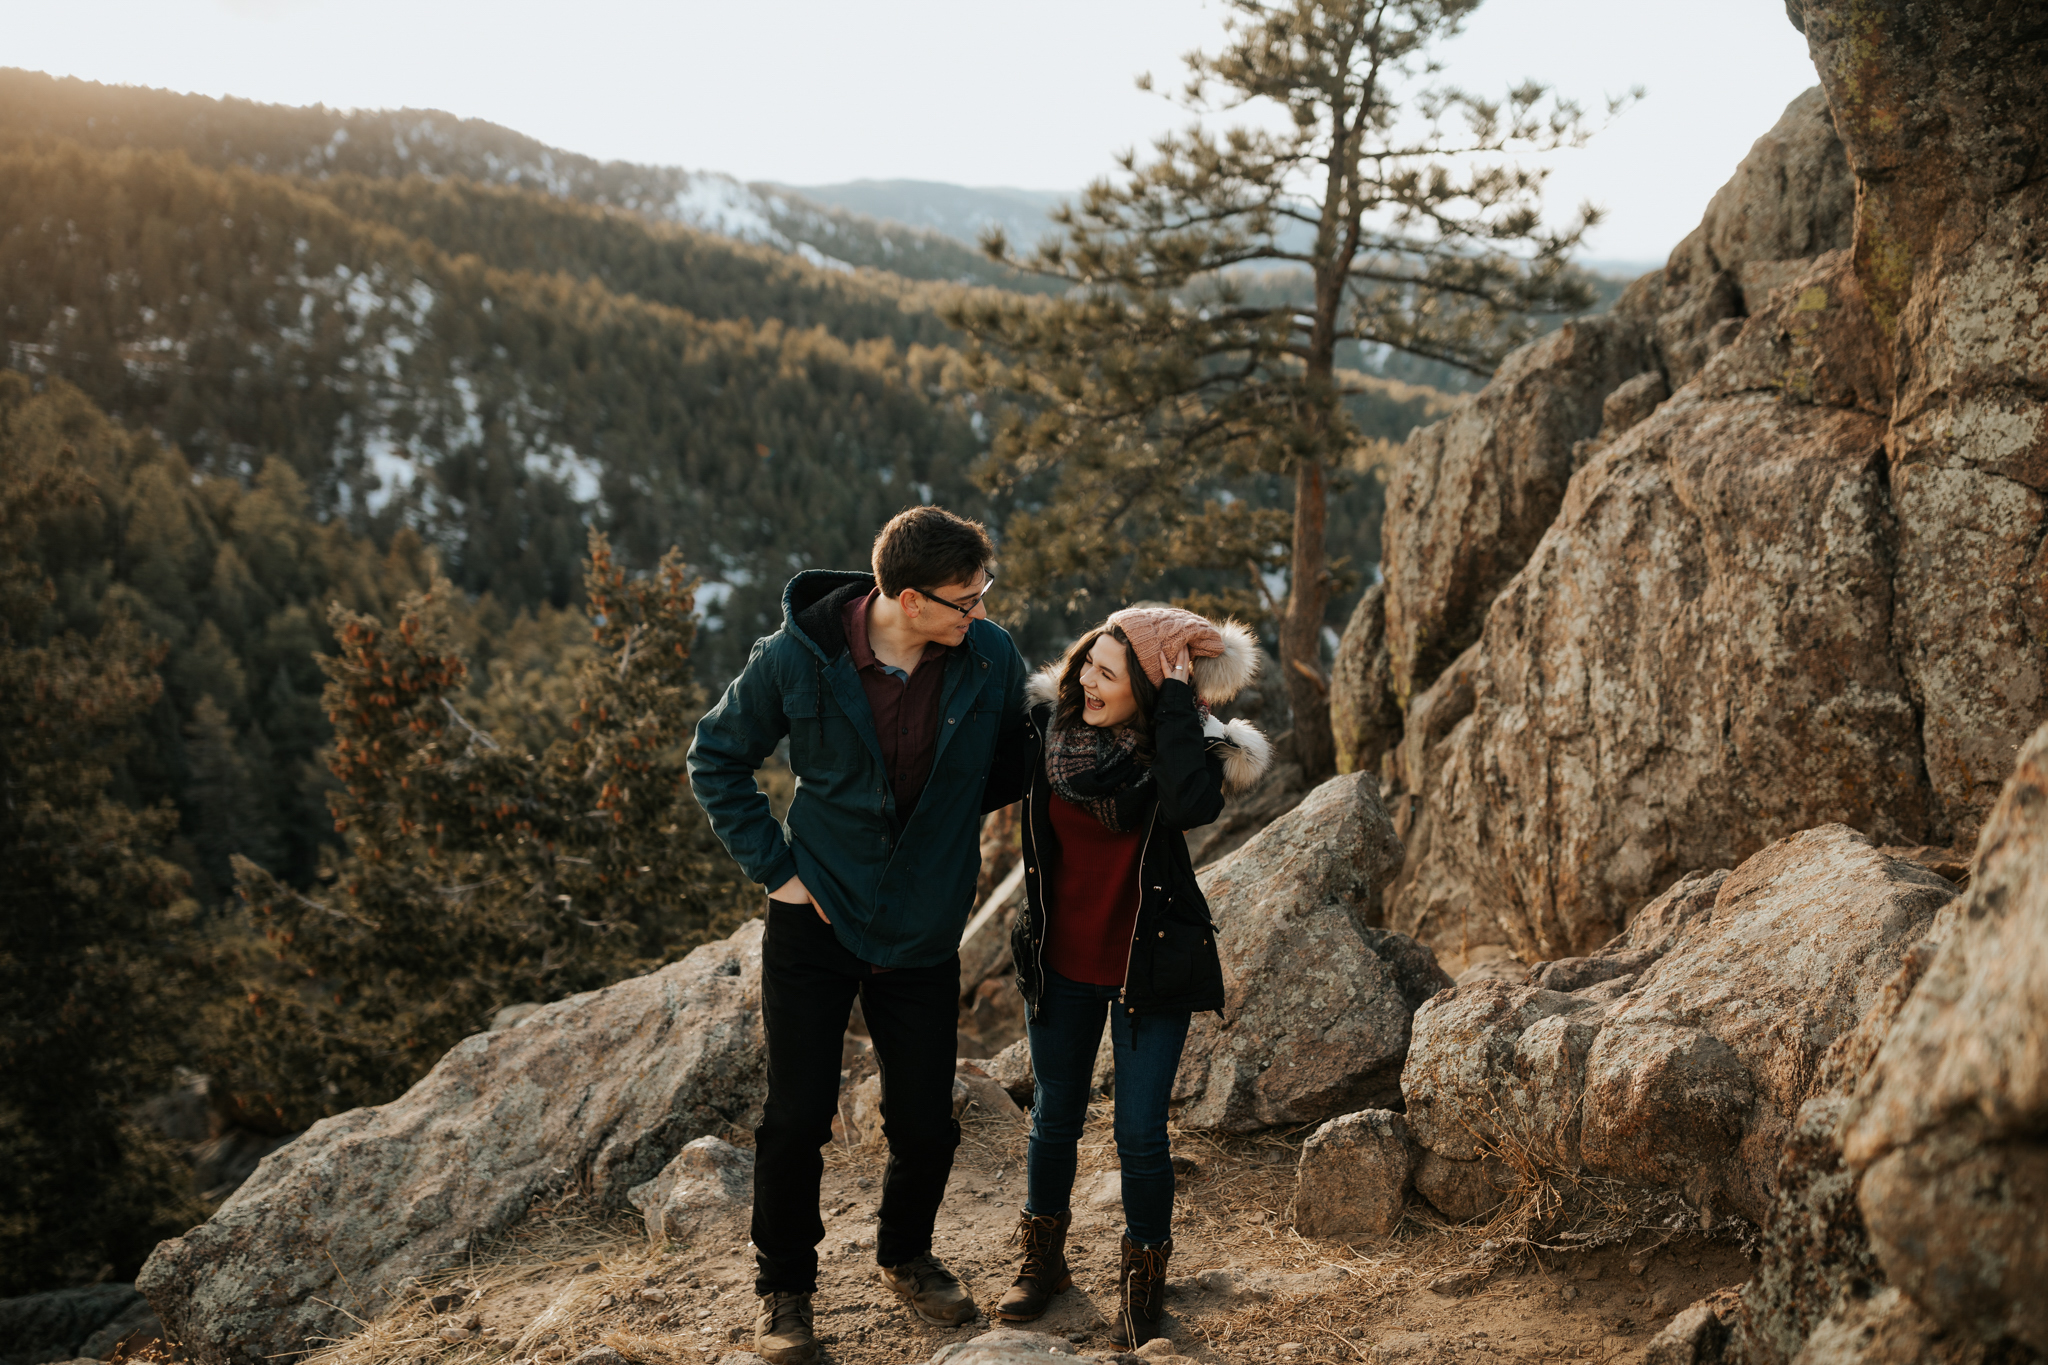 Leah Nicole Photography - Houston Wedding Photographer-Colorado Mountaintop Engagement Session- Houston Wedding Photographer -Kristen Giles Photography-8.jpg